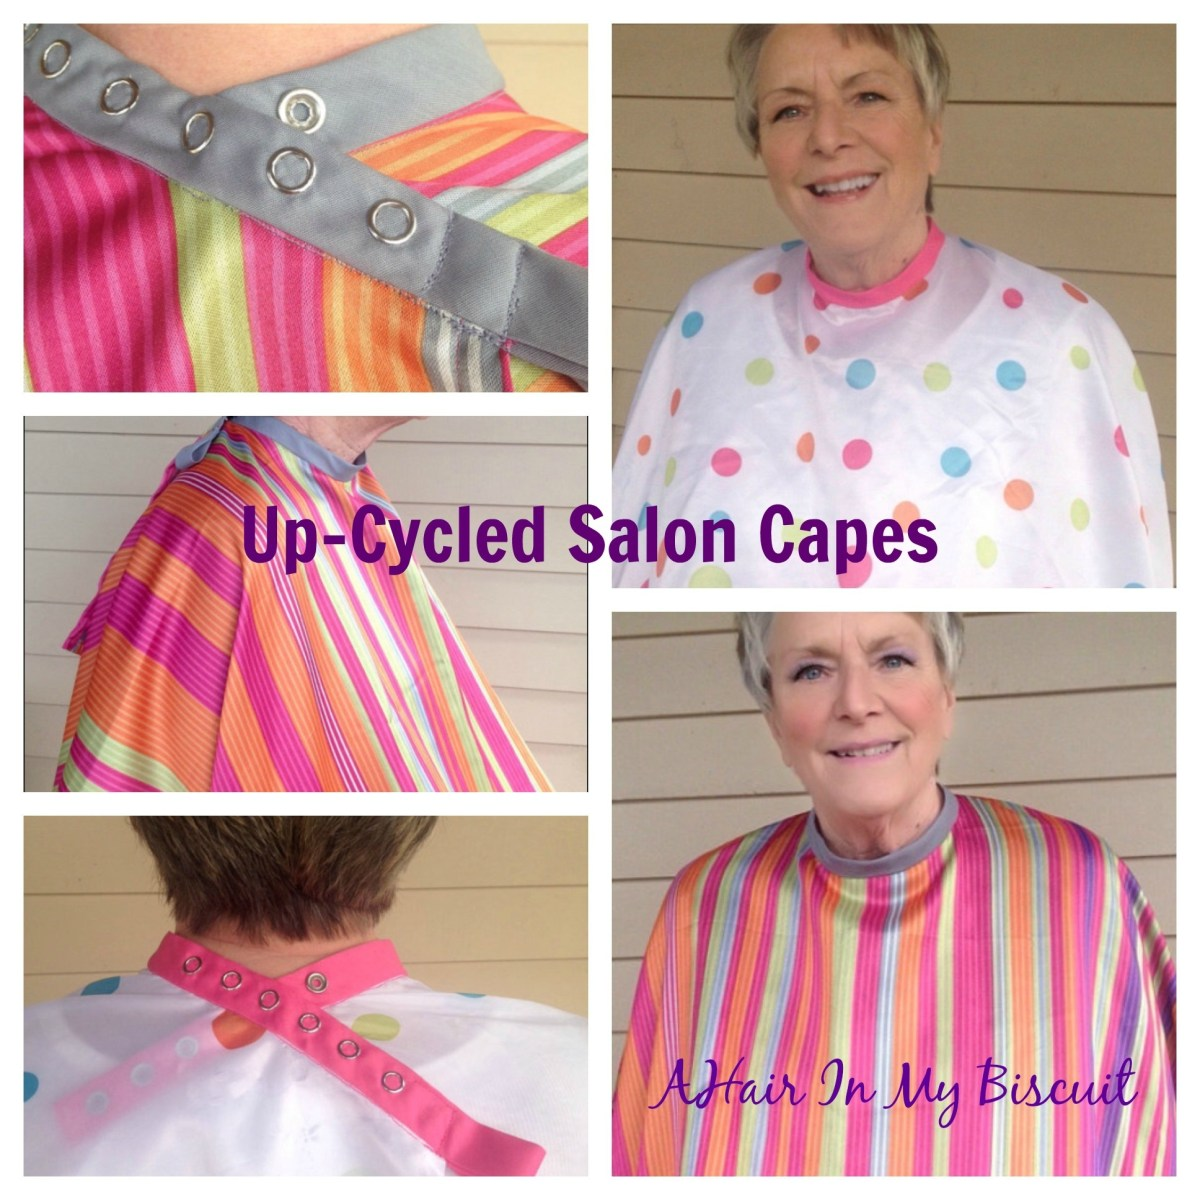 Up-Cycled Salon Capes on Etsy